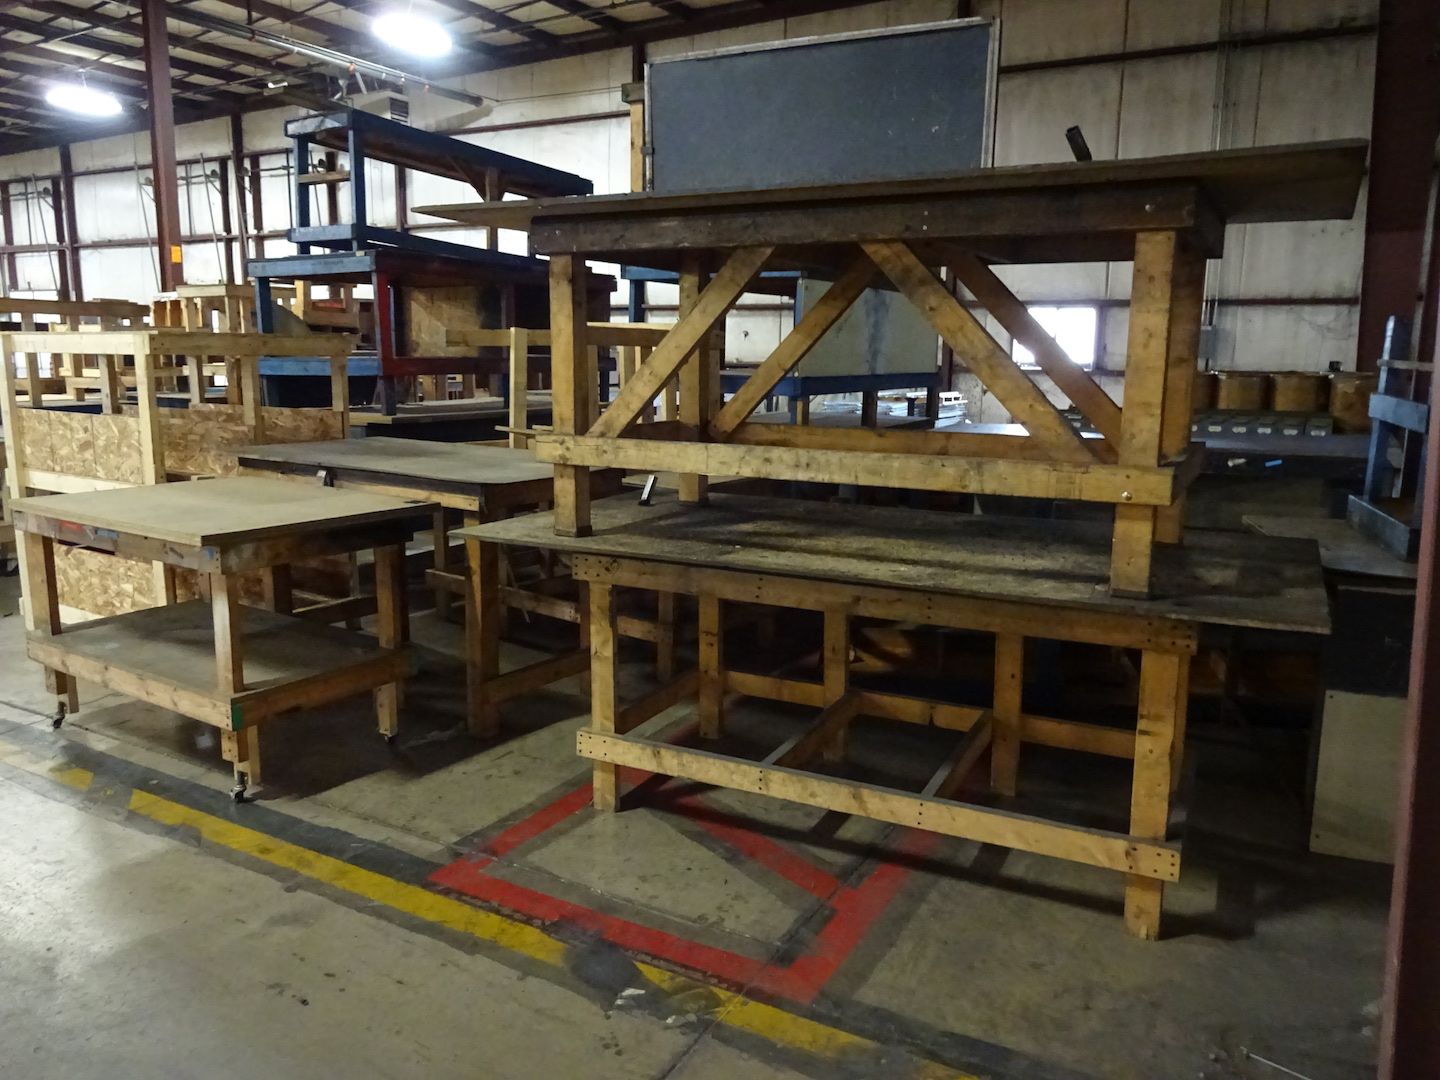 LOT: Assorted Wood Tables & Work Benches - Image 2 of 2